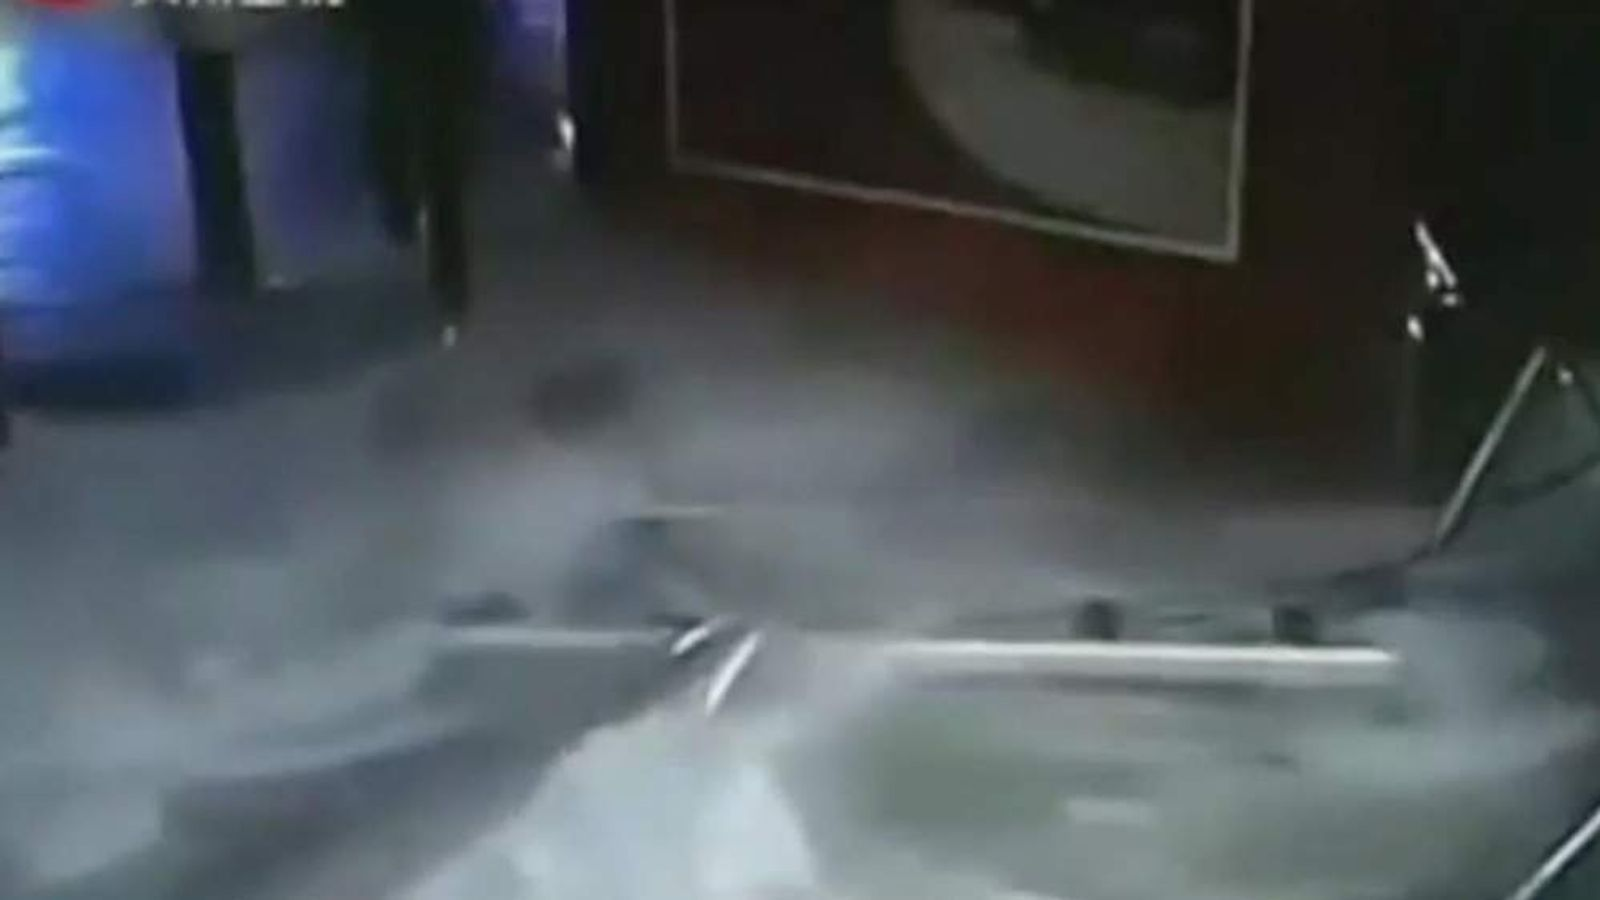 Shark tank explodes at shopping centre in Shanghai, China